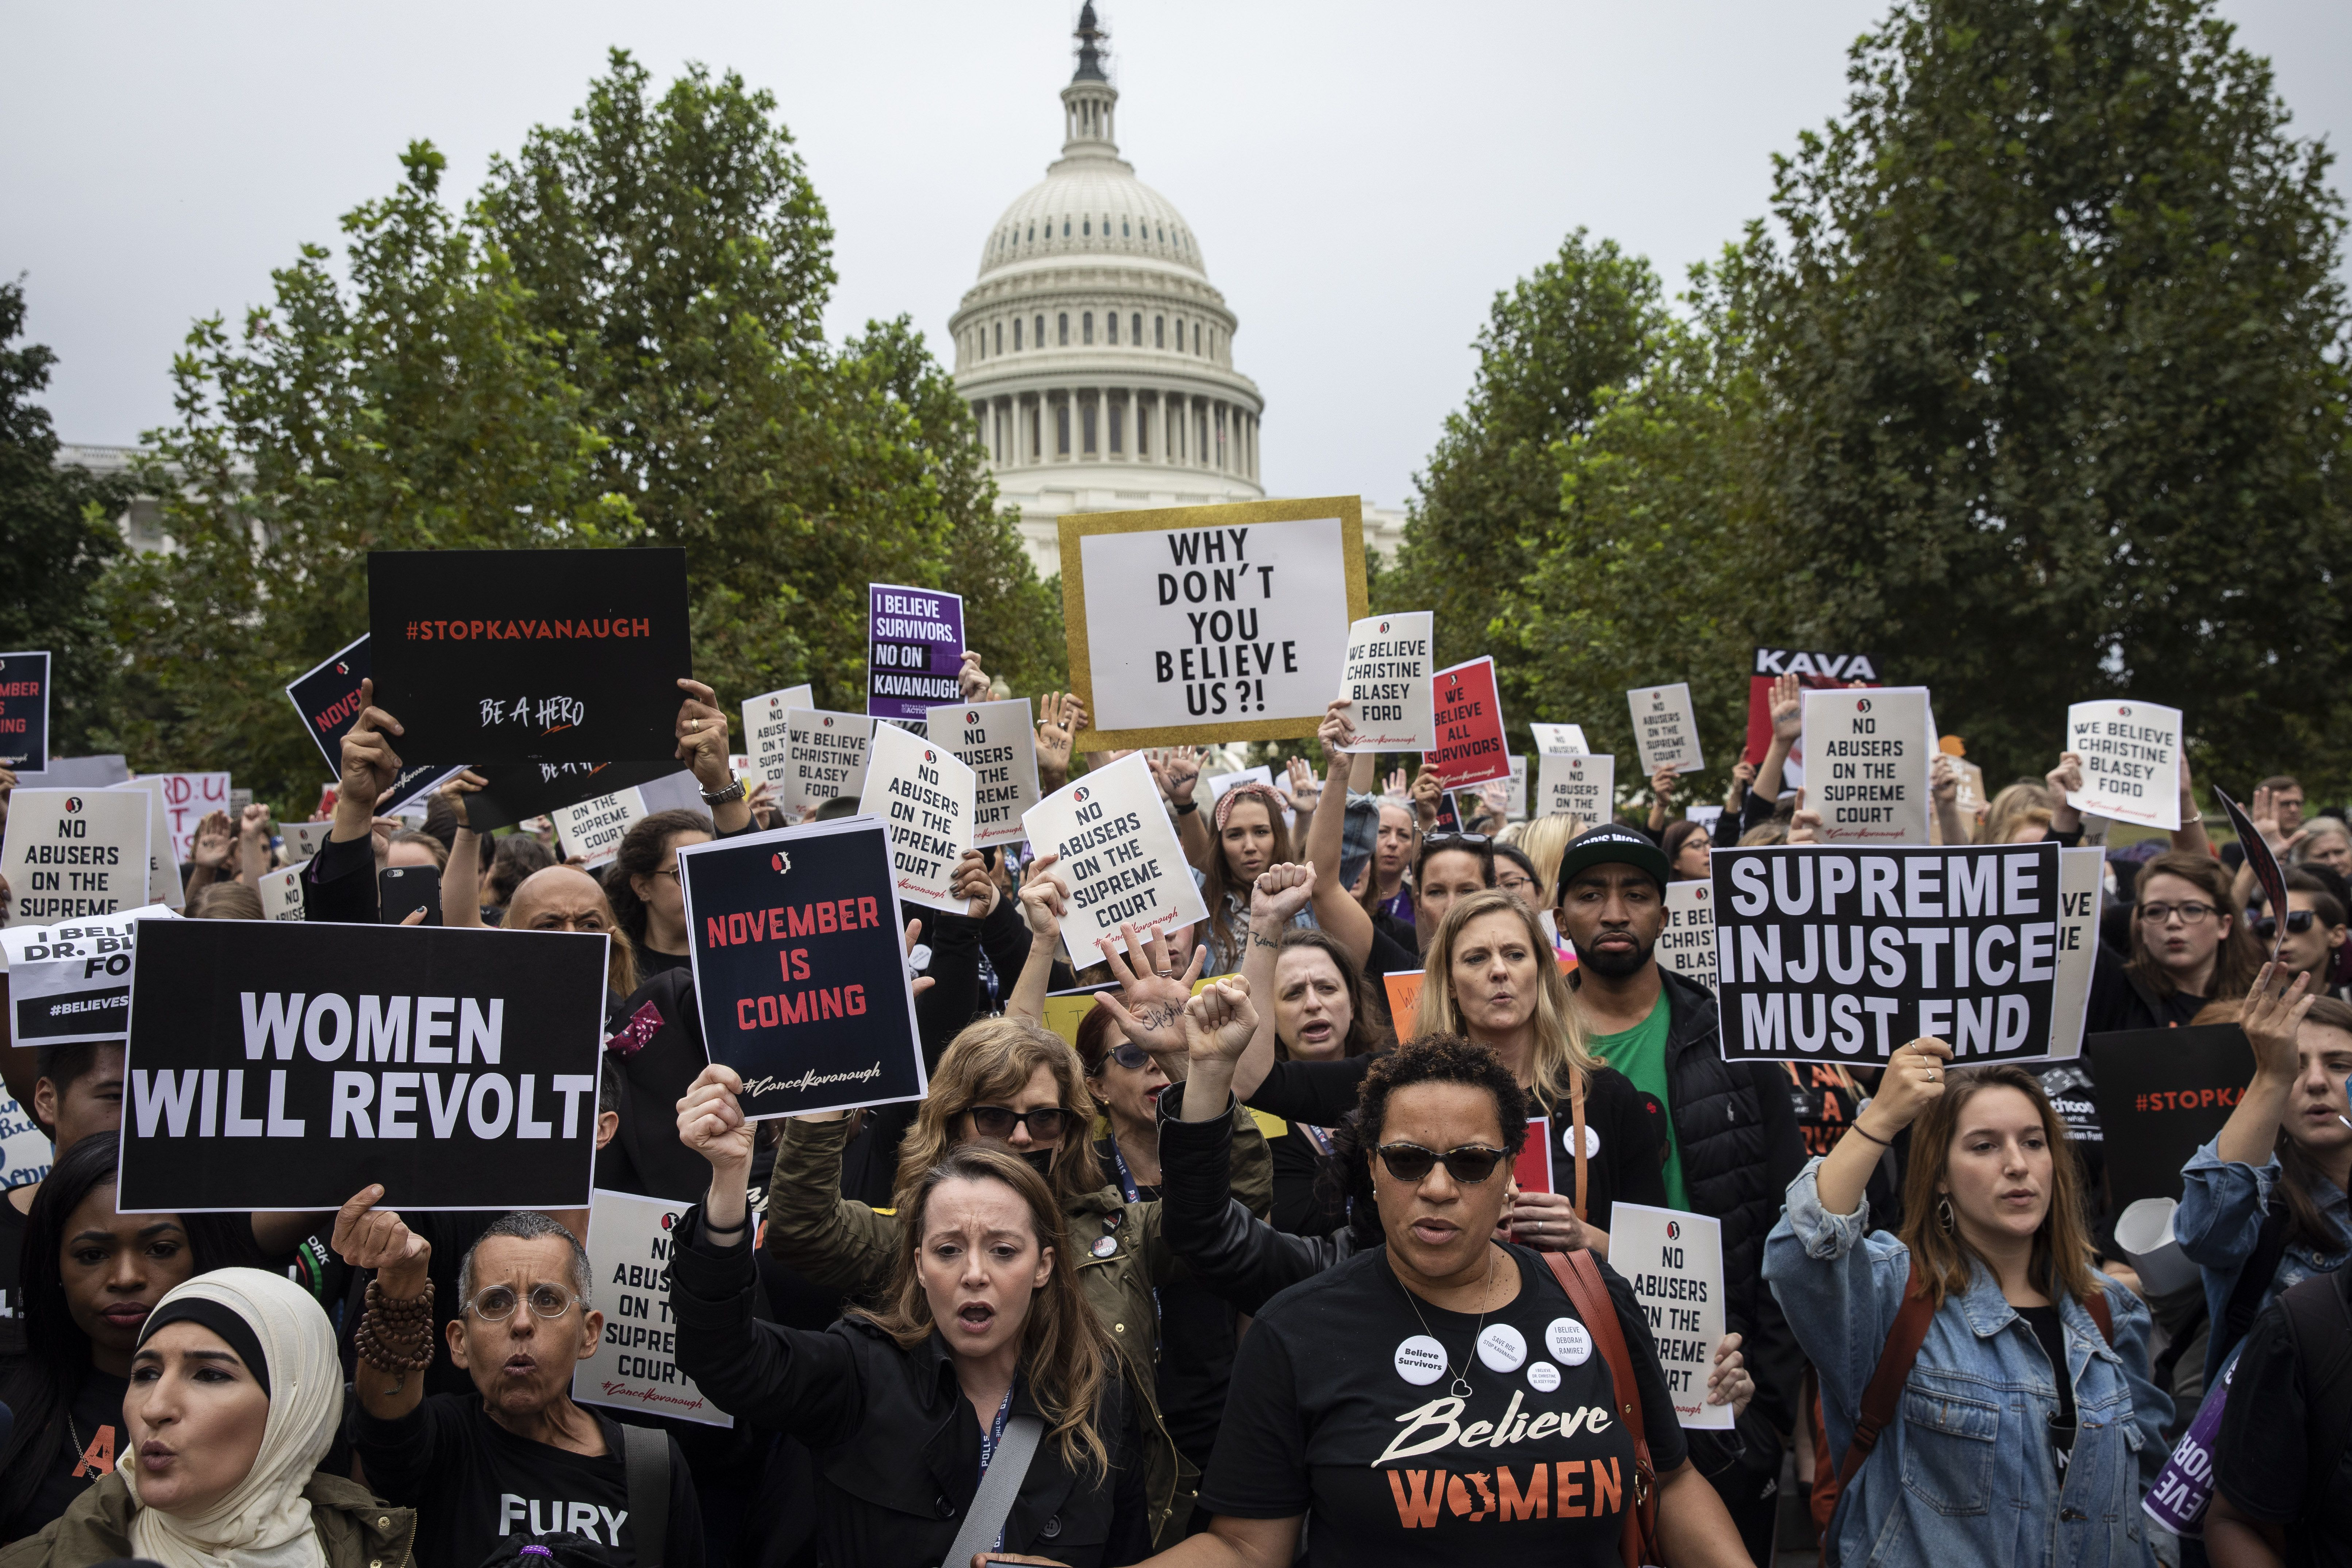 Protestors rally against Supreme Court nominee Judge Brett Kavanaugh as they march on Capitol Hill in Washington, DC.